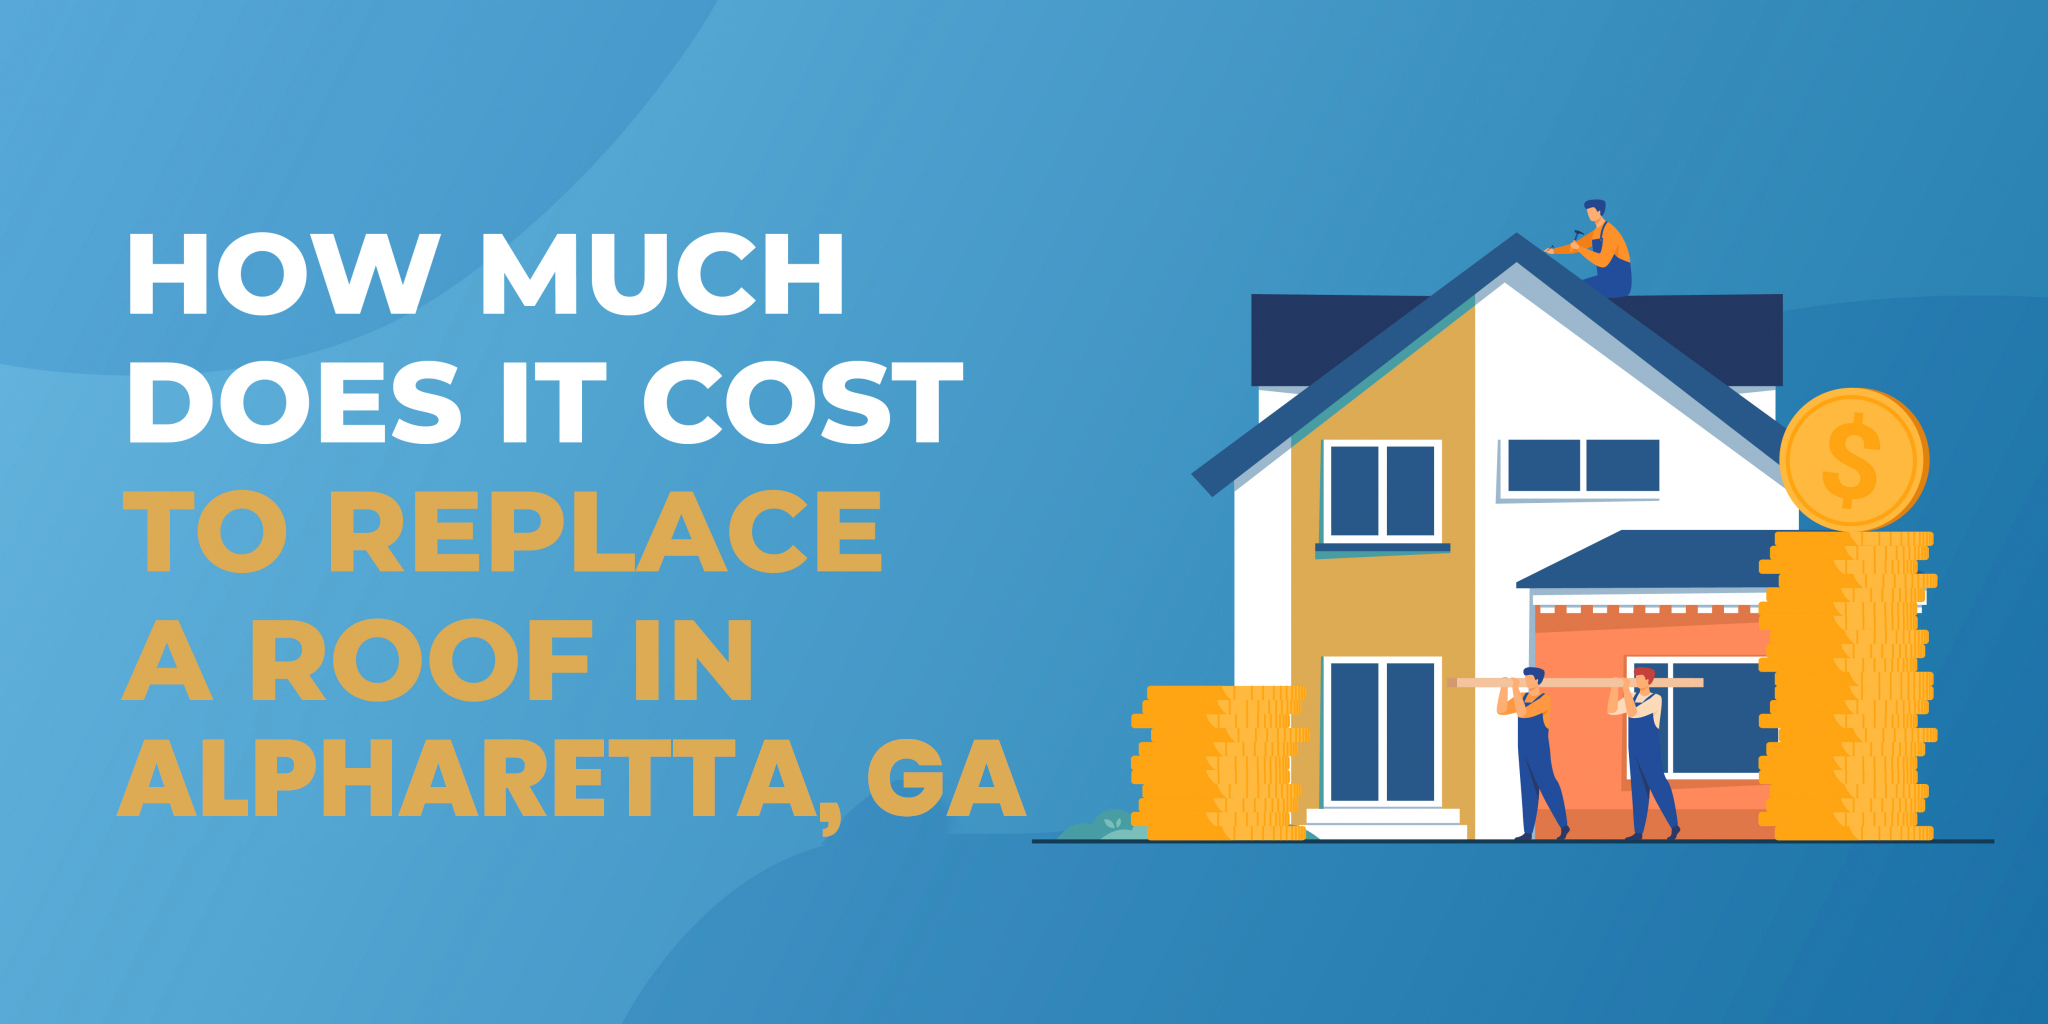 How Much Does It Cost to Replace a Roof in Alpharetta?